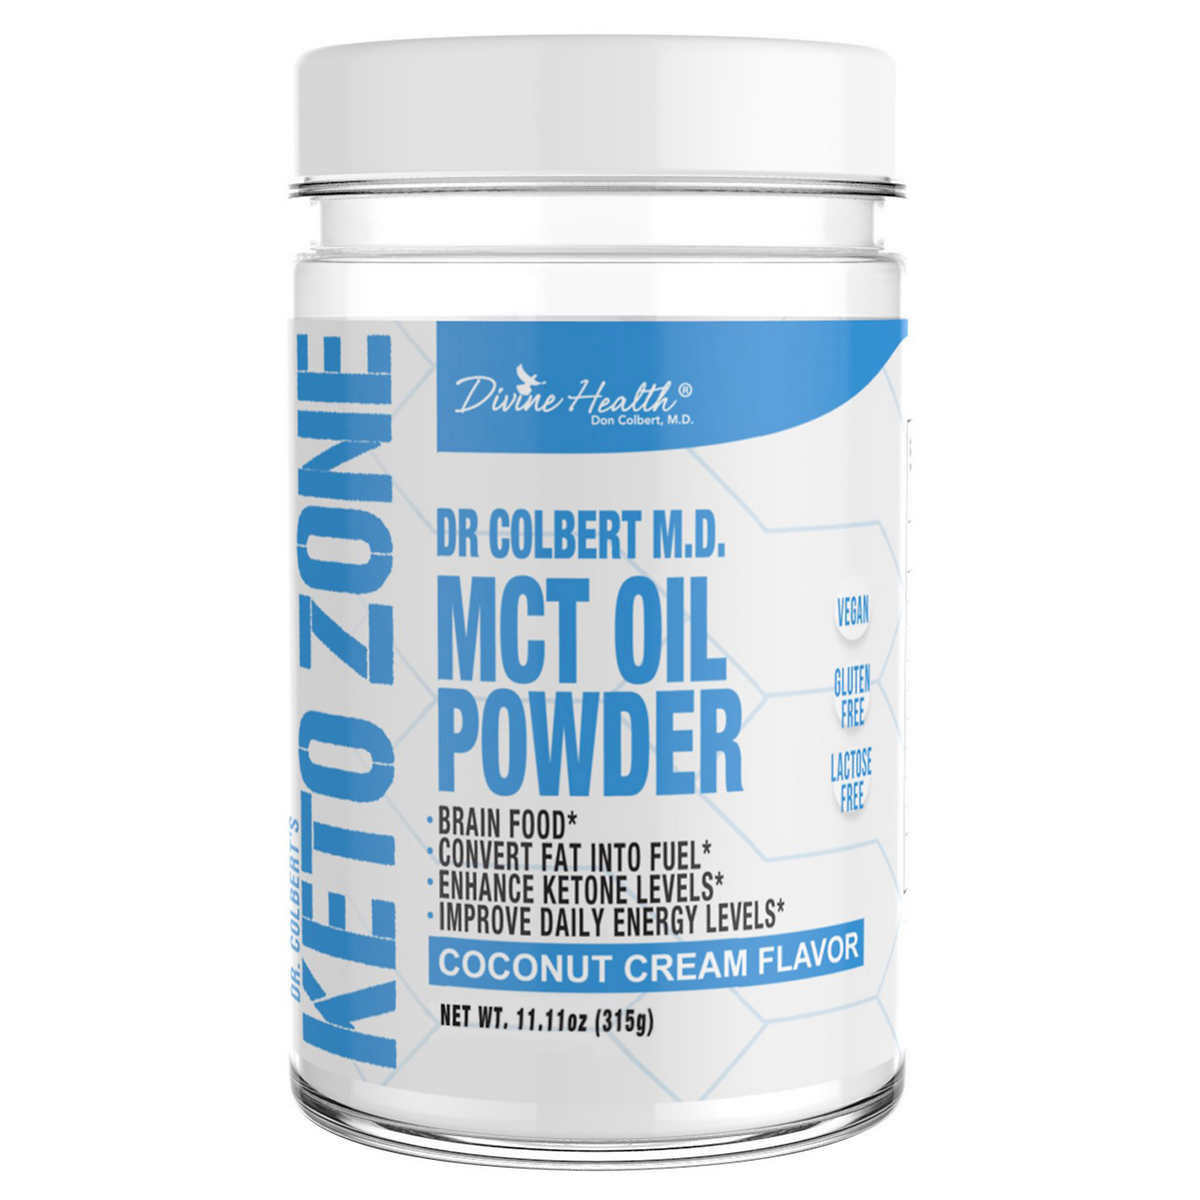 Divine Health Keto Zone MCT Oil Powder, 11 11 oz